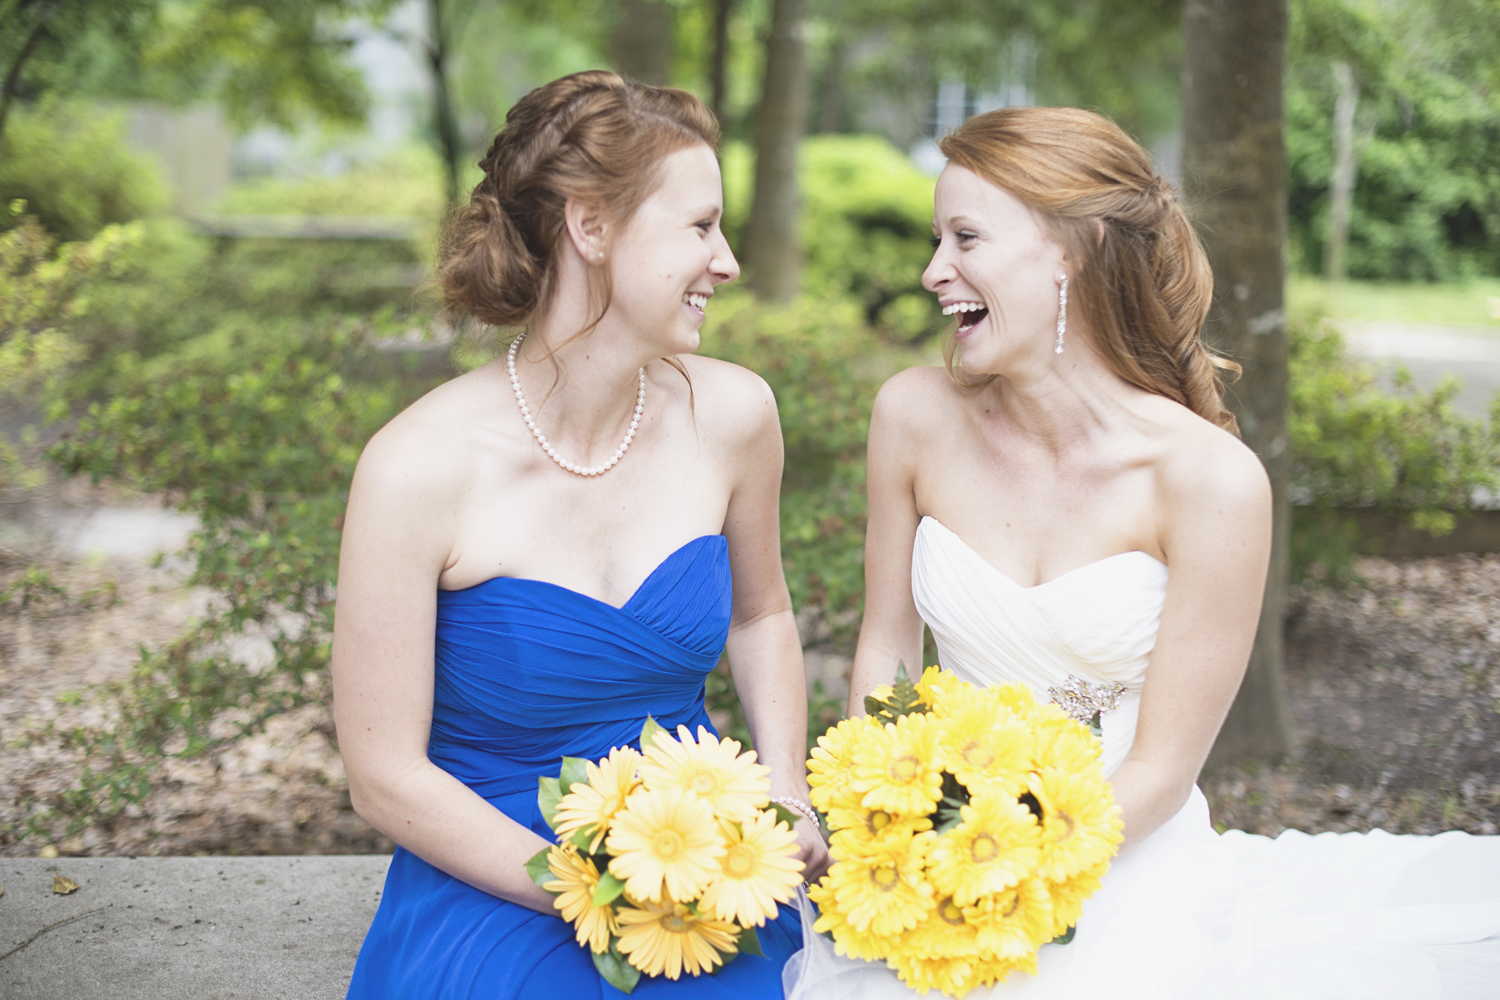 Mariners Museum Wedding | Newport News, Virginia |  Royal blue and yellow daisy bridal party portraits